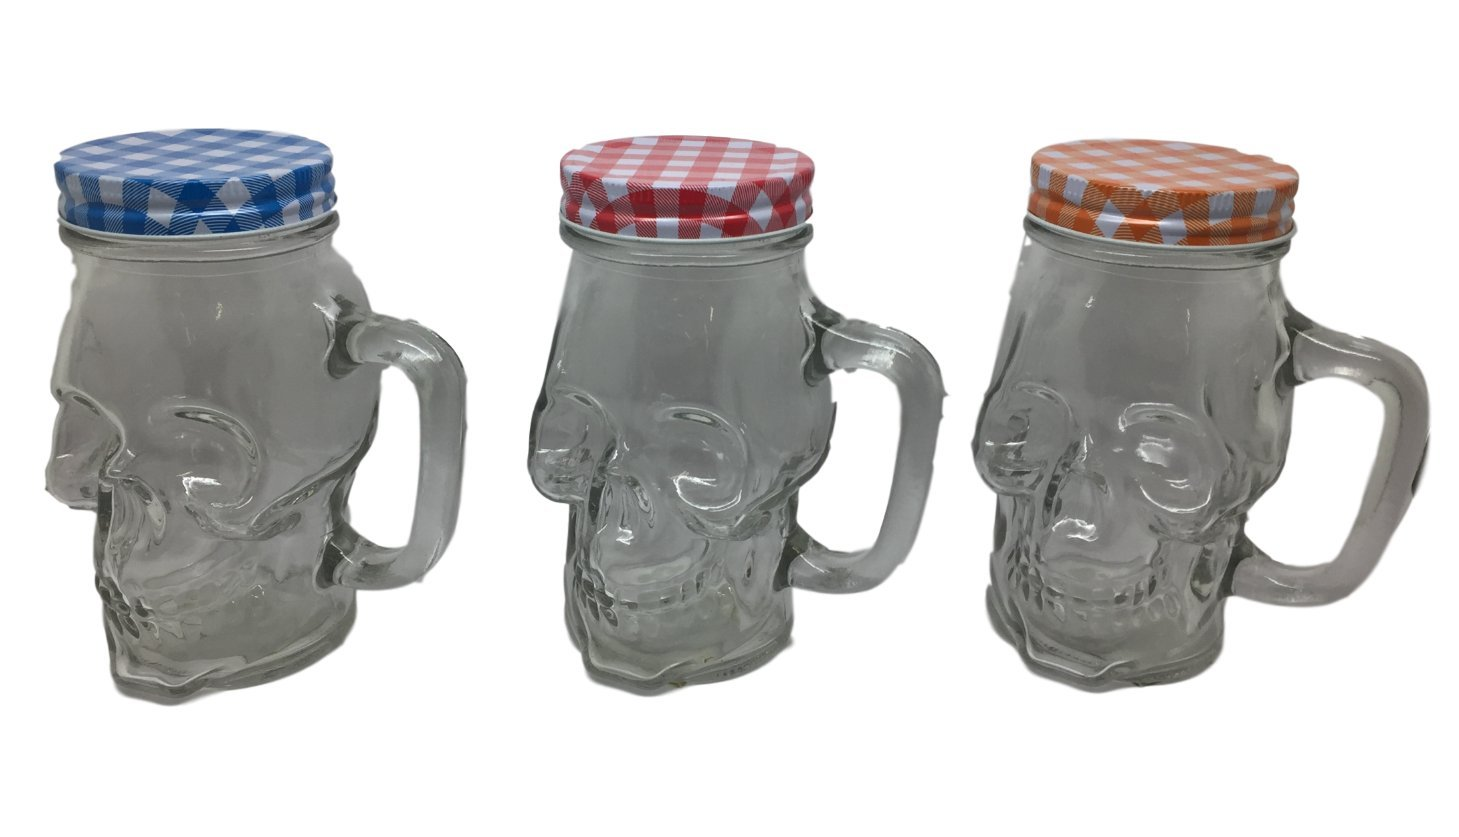 Ducomi teschiobar – Set of 4 Glasses Skull Shape Transparent Glass with Handle and Coloured Caps – 400 ml